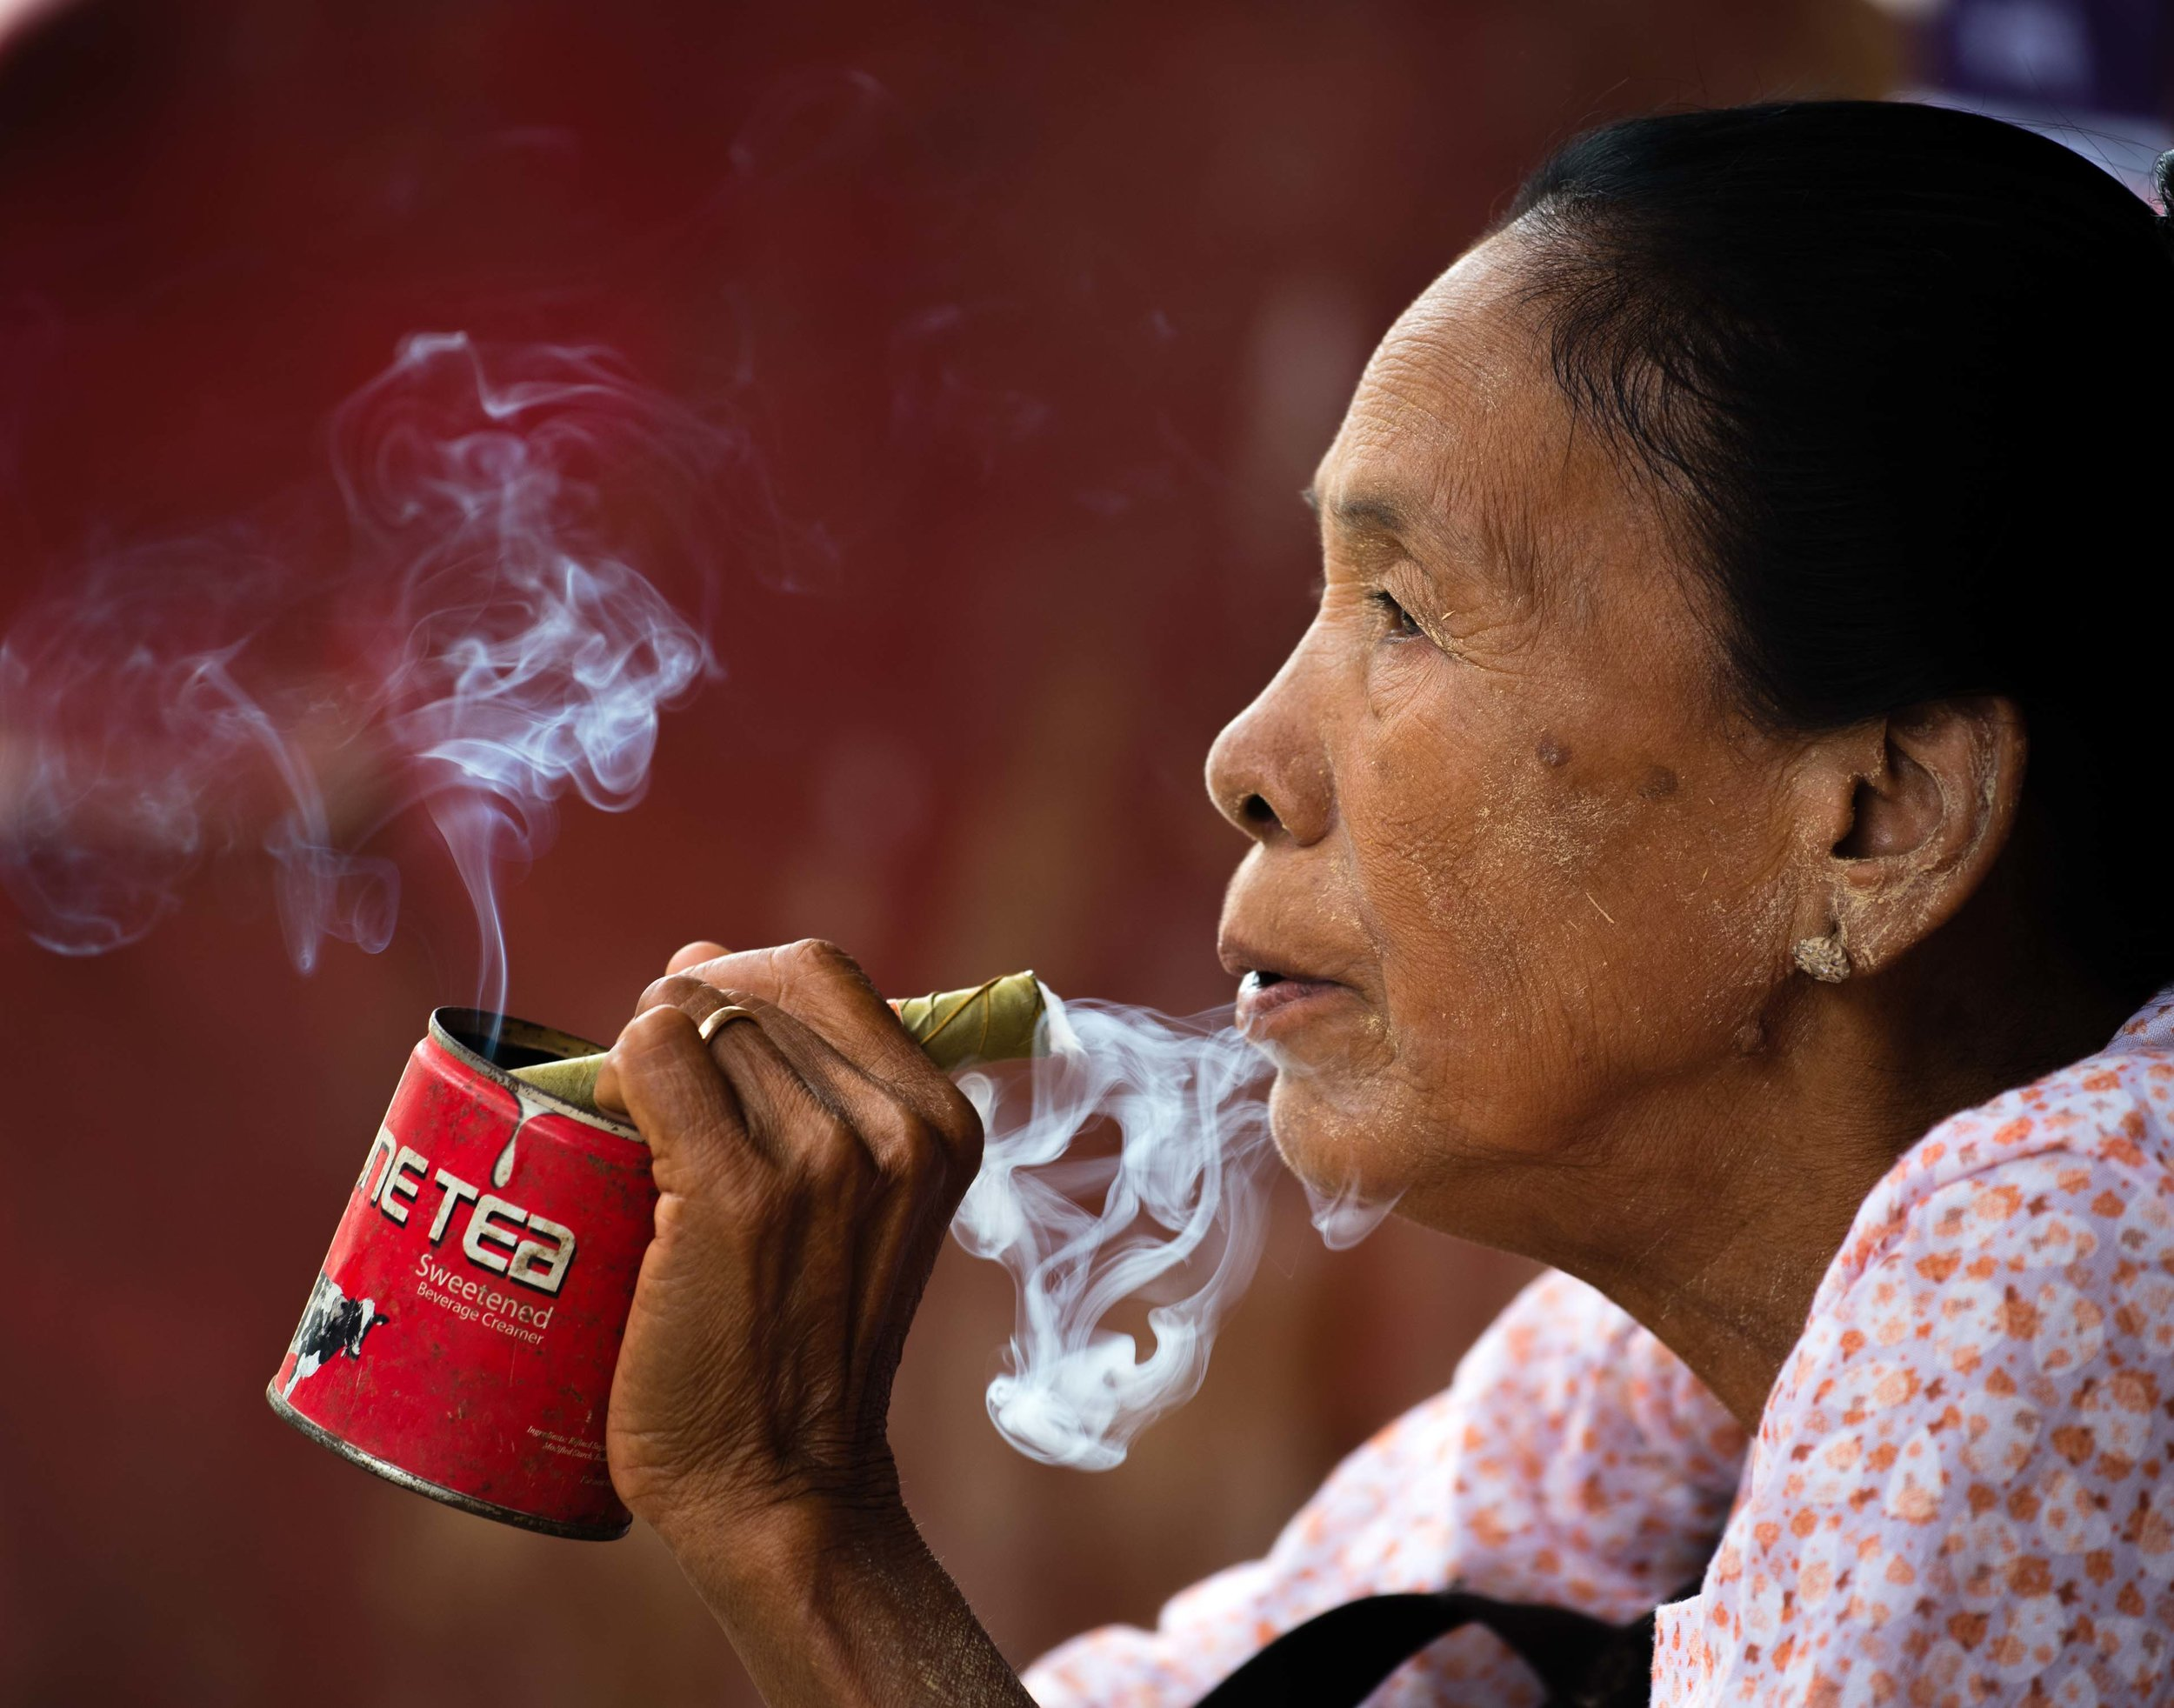 Cigar Break, Bagan, Myanmar 2015